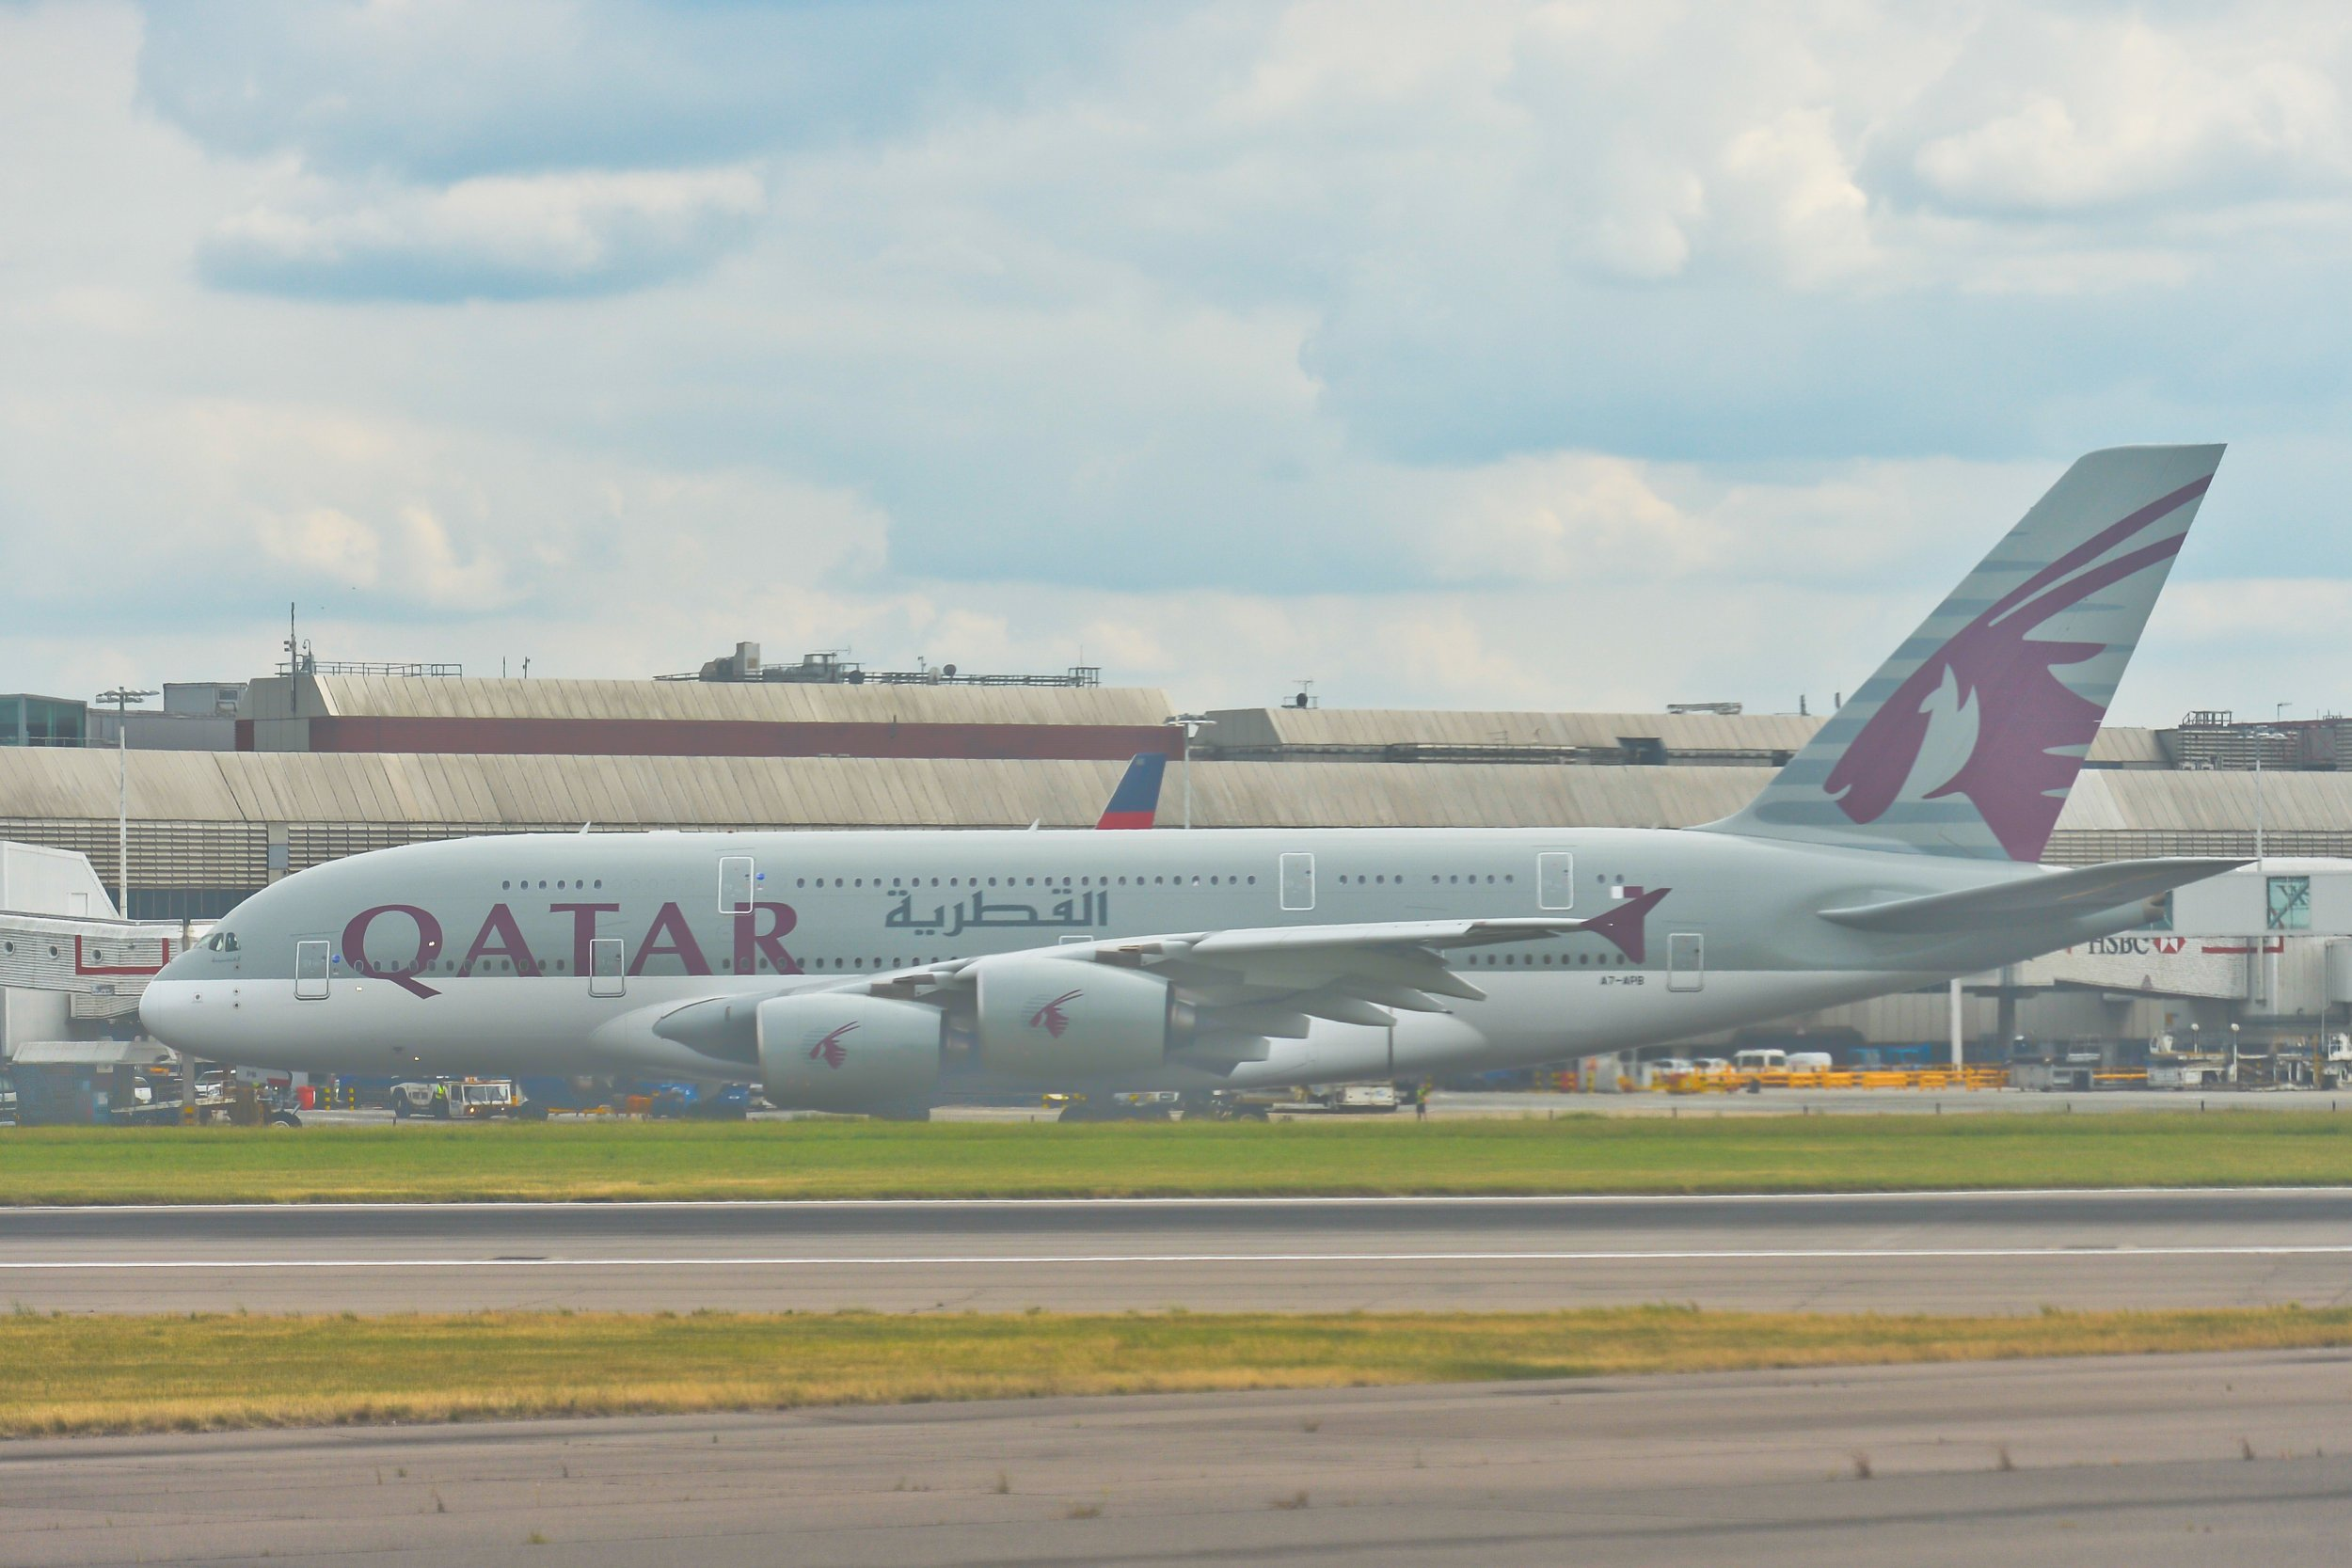 A view of Qatar Airways plane, the state-owned flag carrier of Qatar, at London Heathrow Airport. On Thursday, 21 July 2016, in Heatrow, United Kingdom. (Photo by Artur Widak/NurPhoto via Getty Images)